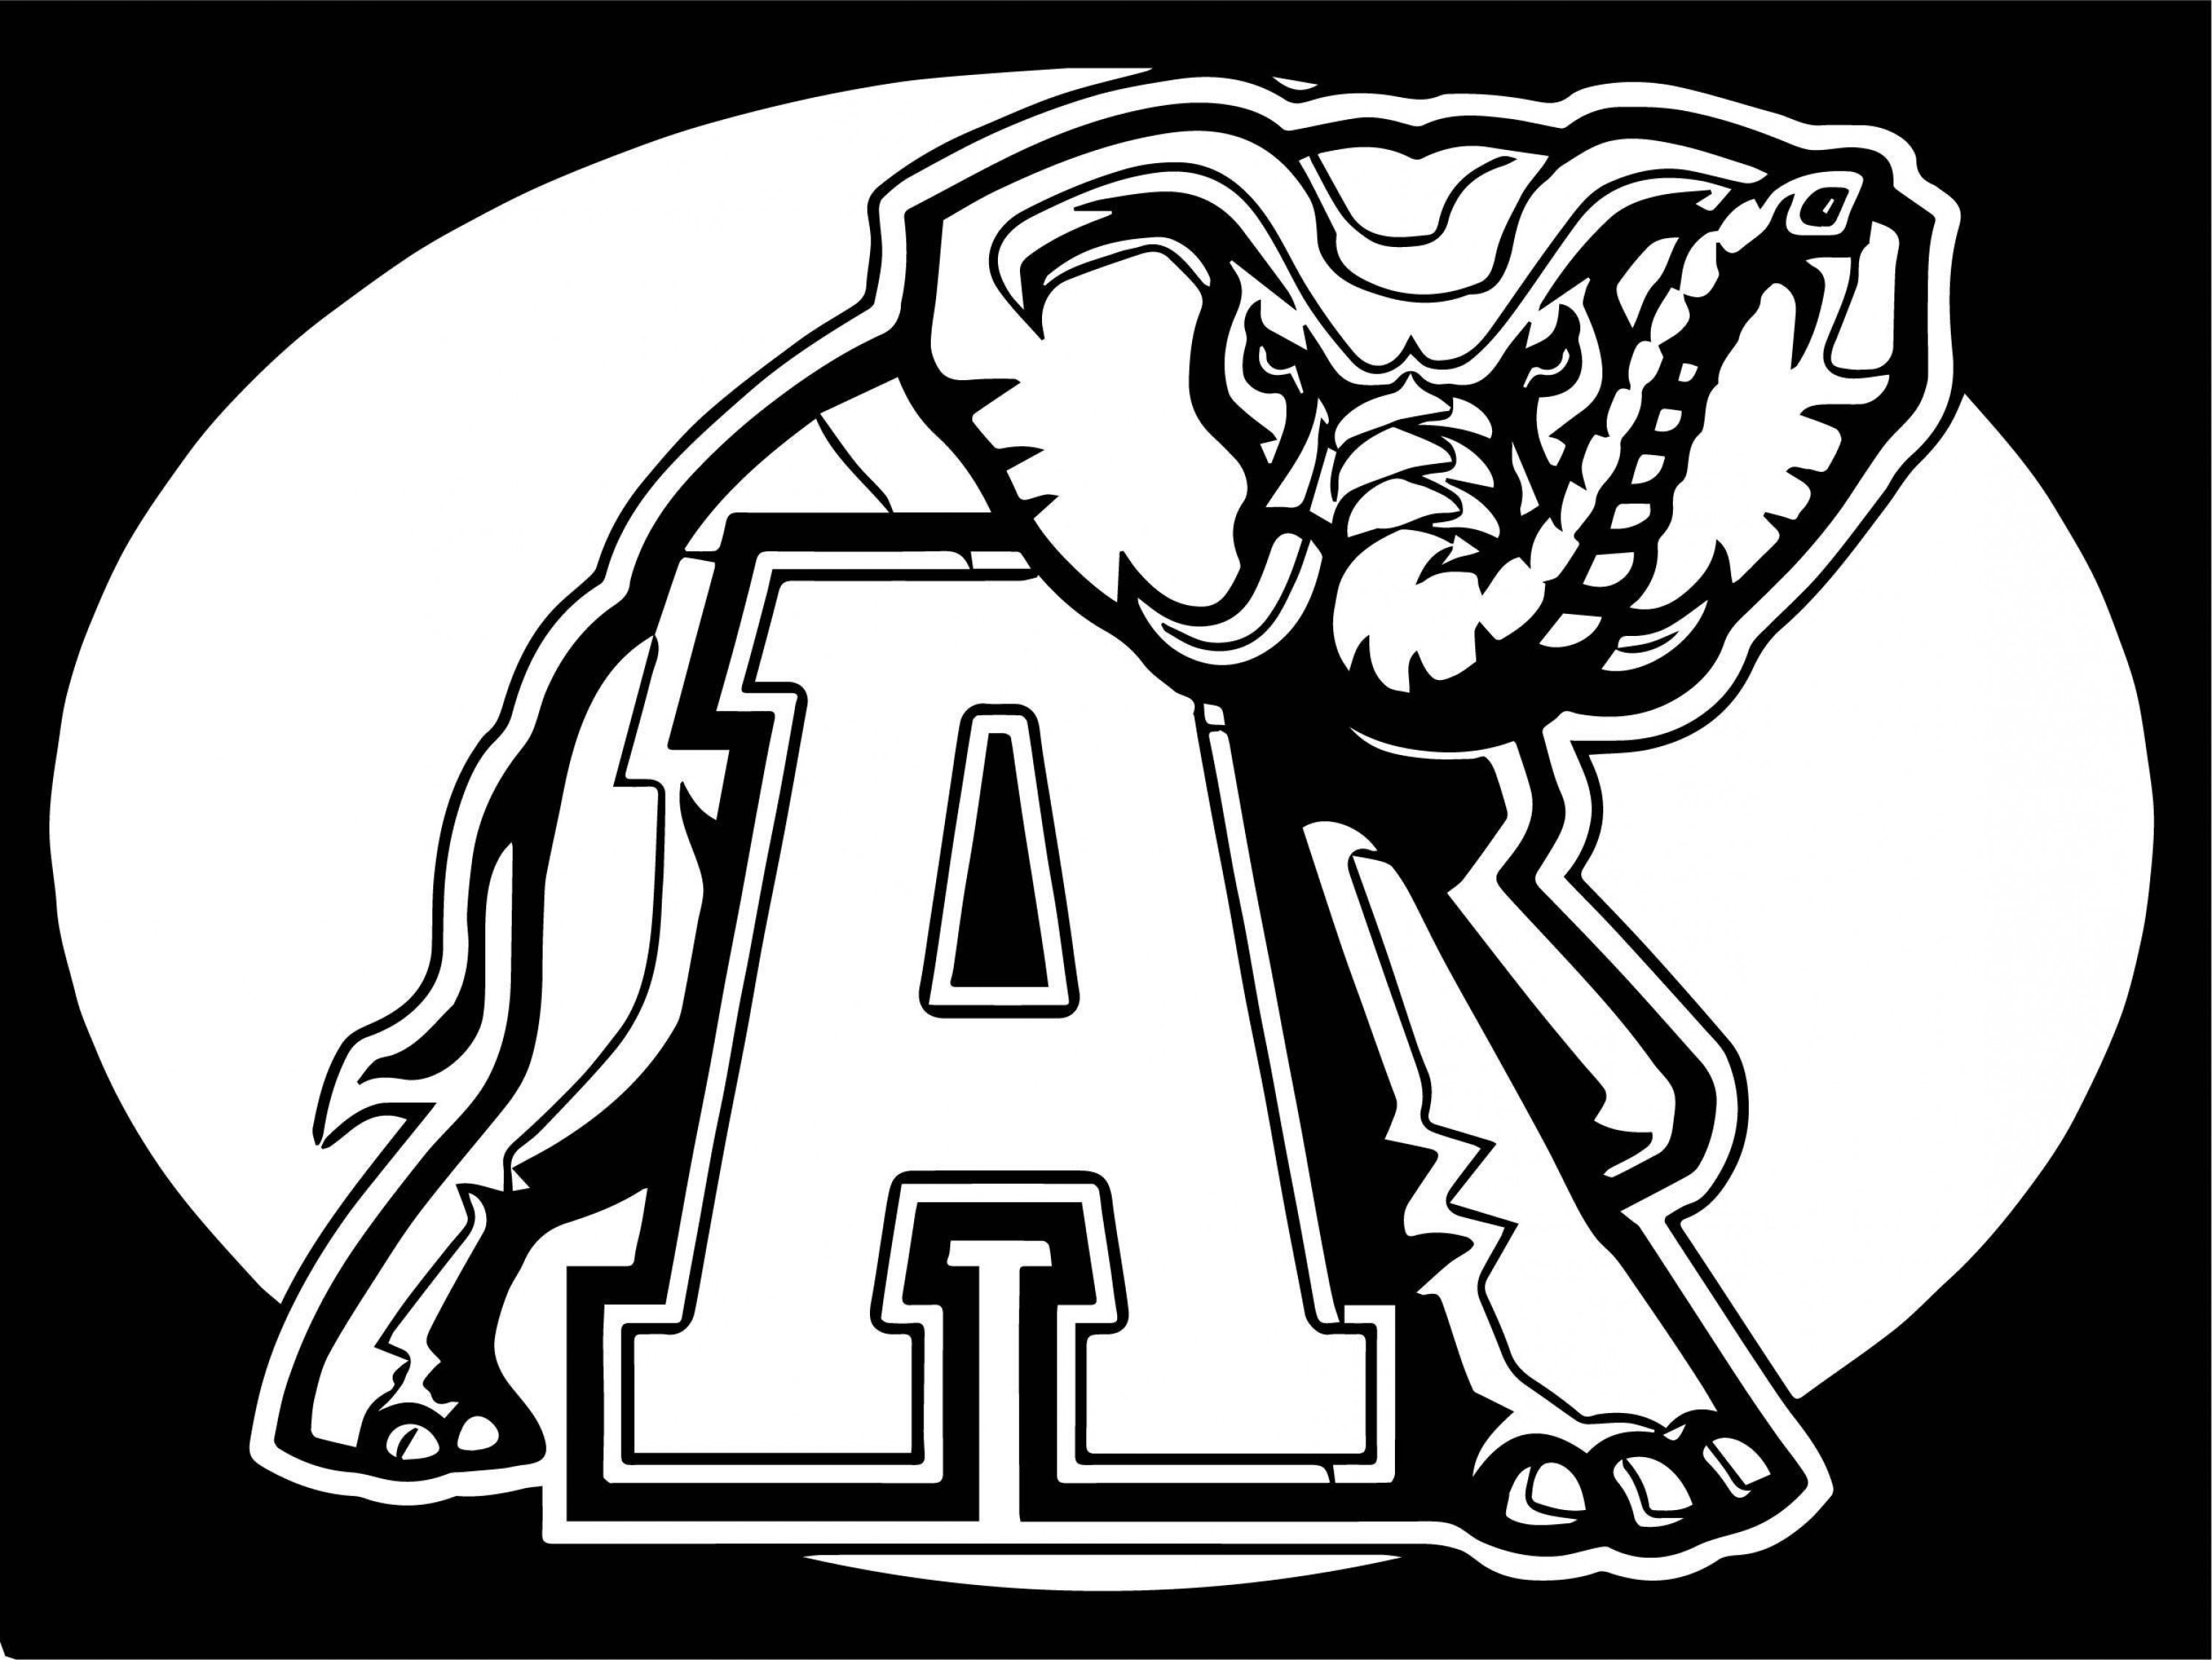 Crimson Tide Vector Art: Alabama Crimson Tide Coloring Pages Football Inspirationa Astonishing Logo Page C